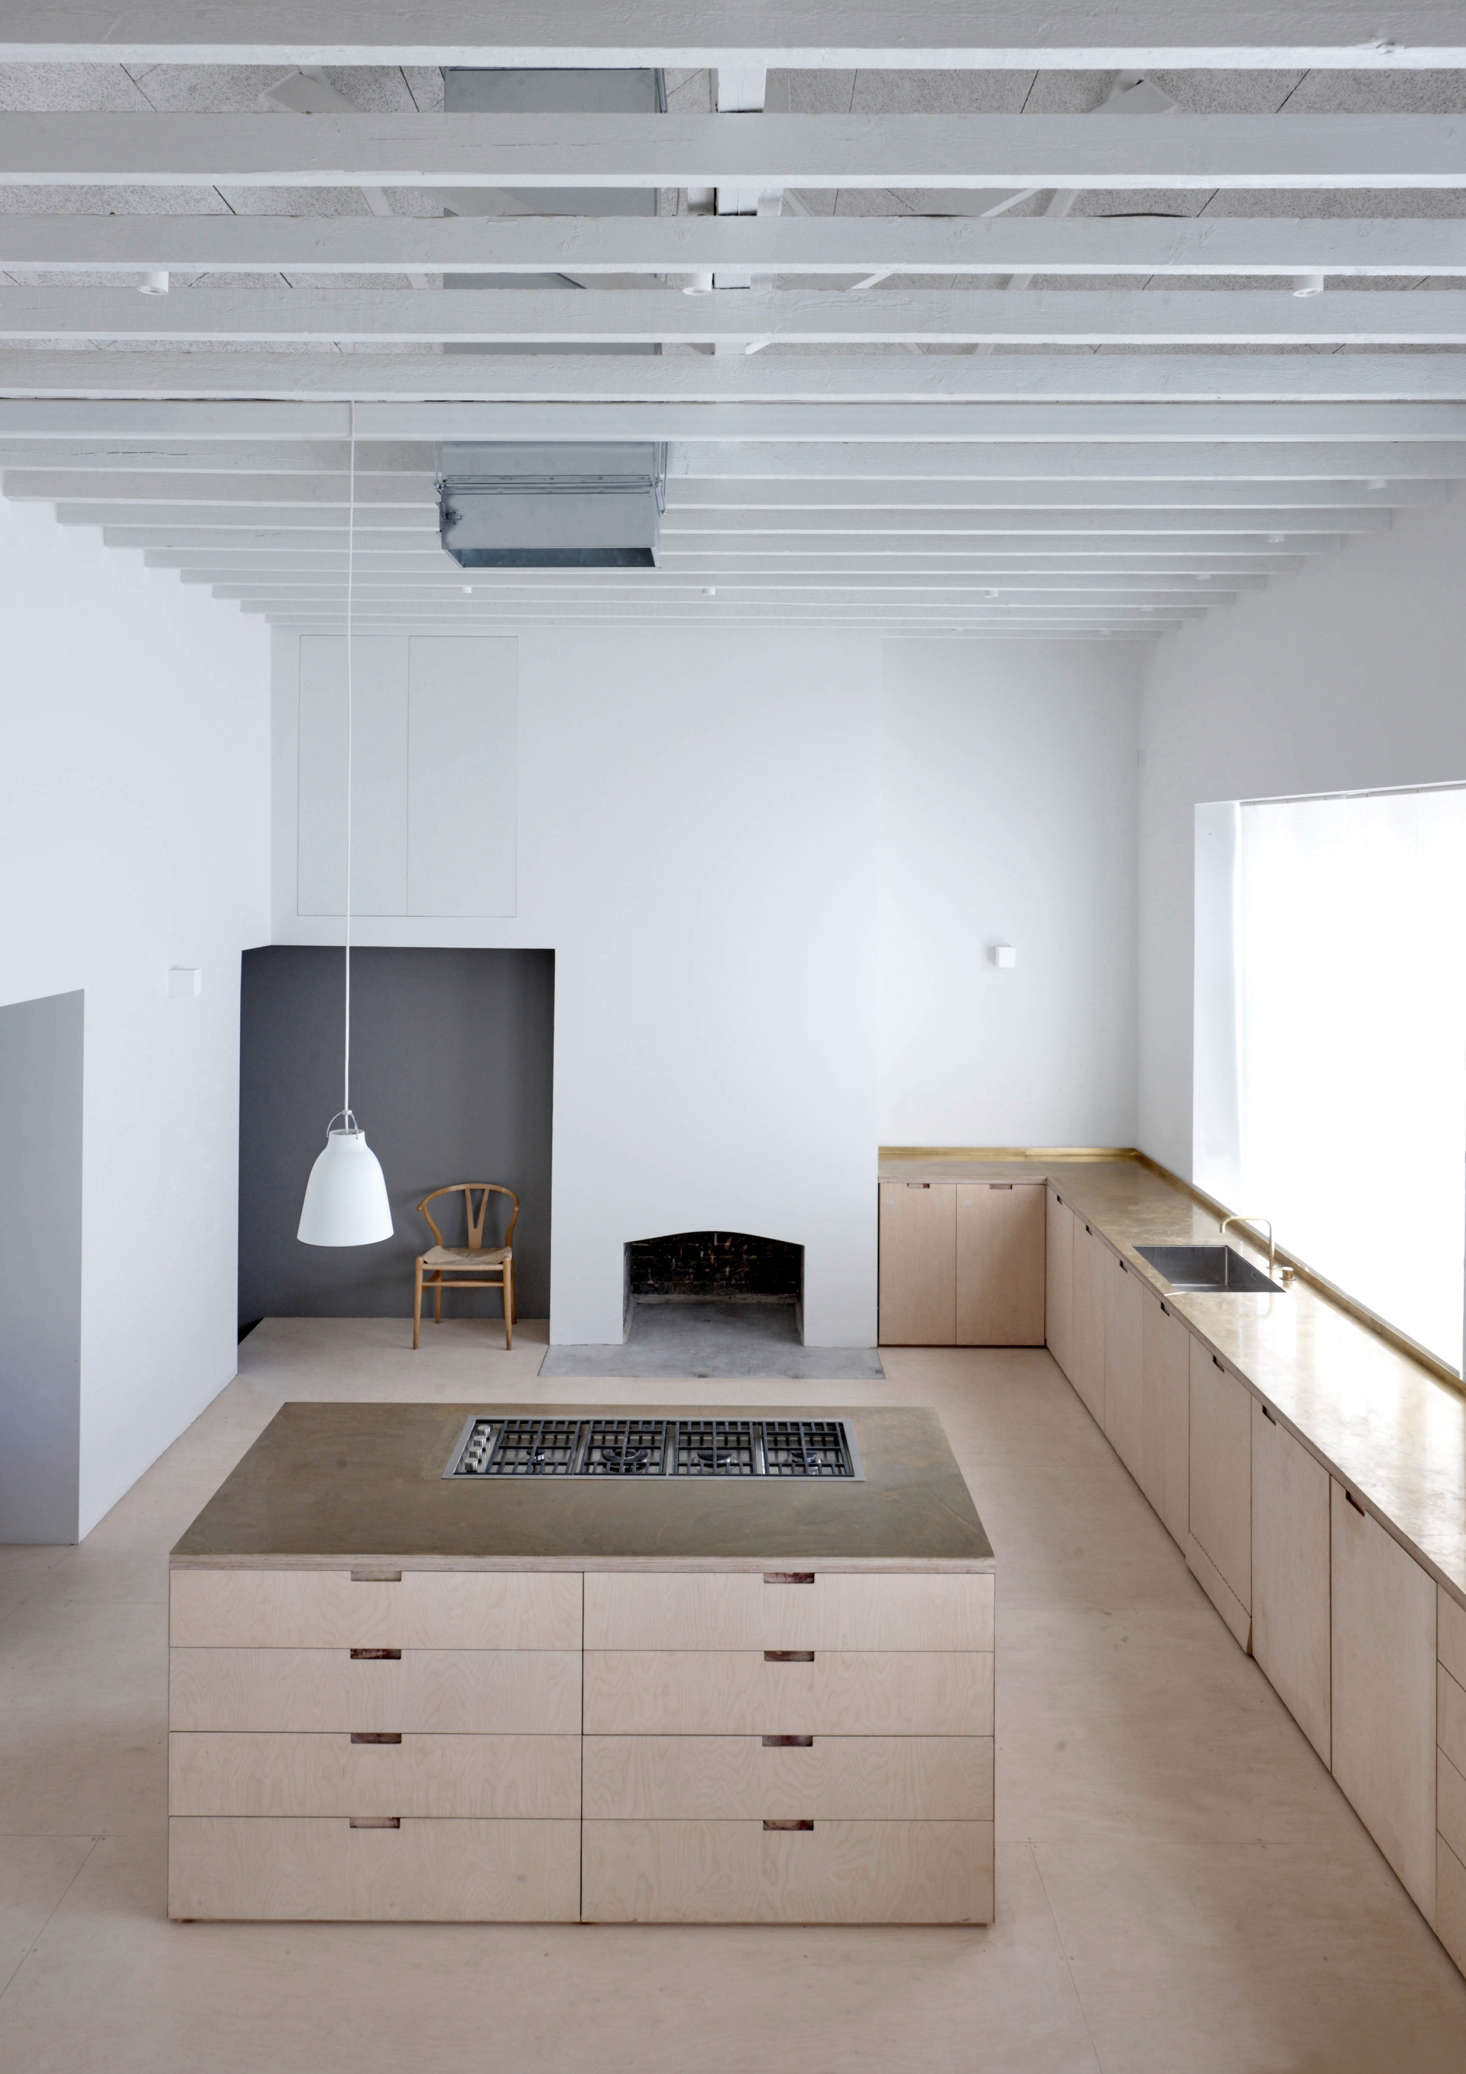 """Viewed from the upstairs bedroom, the kitchen is """"almost church-like in scale and arrangement"""" says McLaren, noting that the materials have been """"left in their natural state—'as found'—and, together with the pleasing rhythms of the original building, combine to make a building of conceptual simplicity and spatial purity."""""""